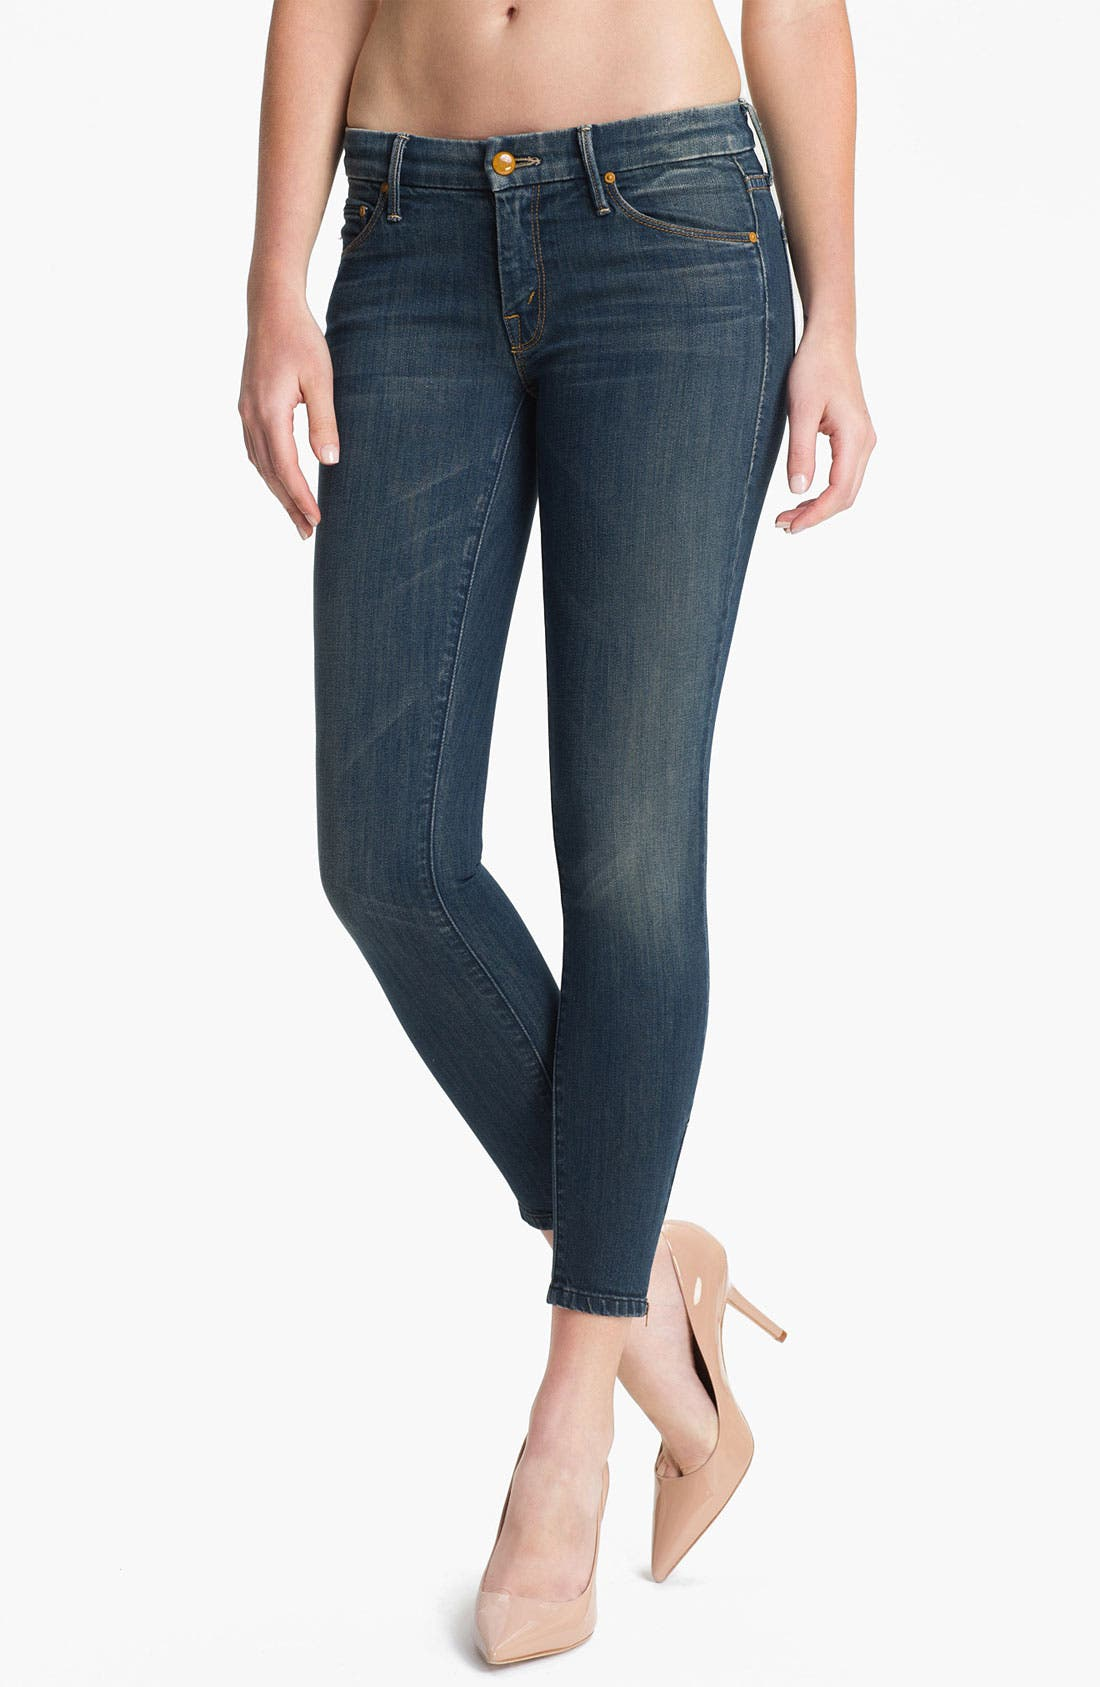 Alternate Image 1 Selected - MOTHER 'The Looker' Ankle Zip Skinny Jeans (Snake Eyes)